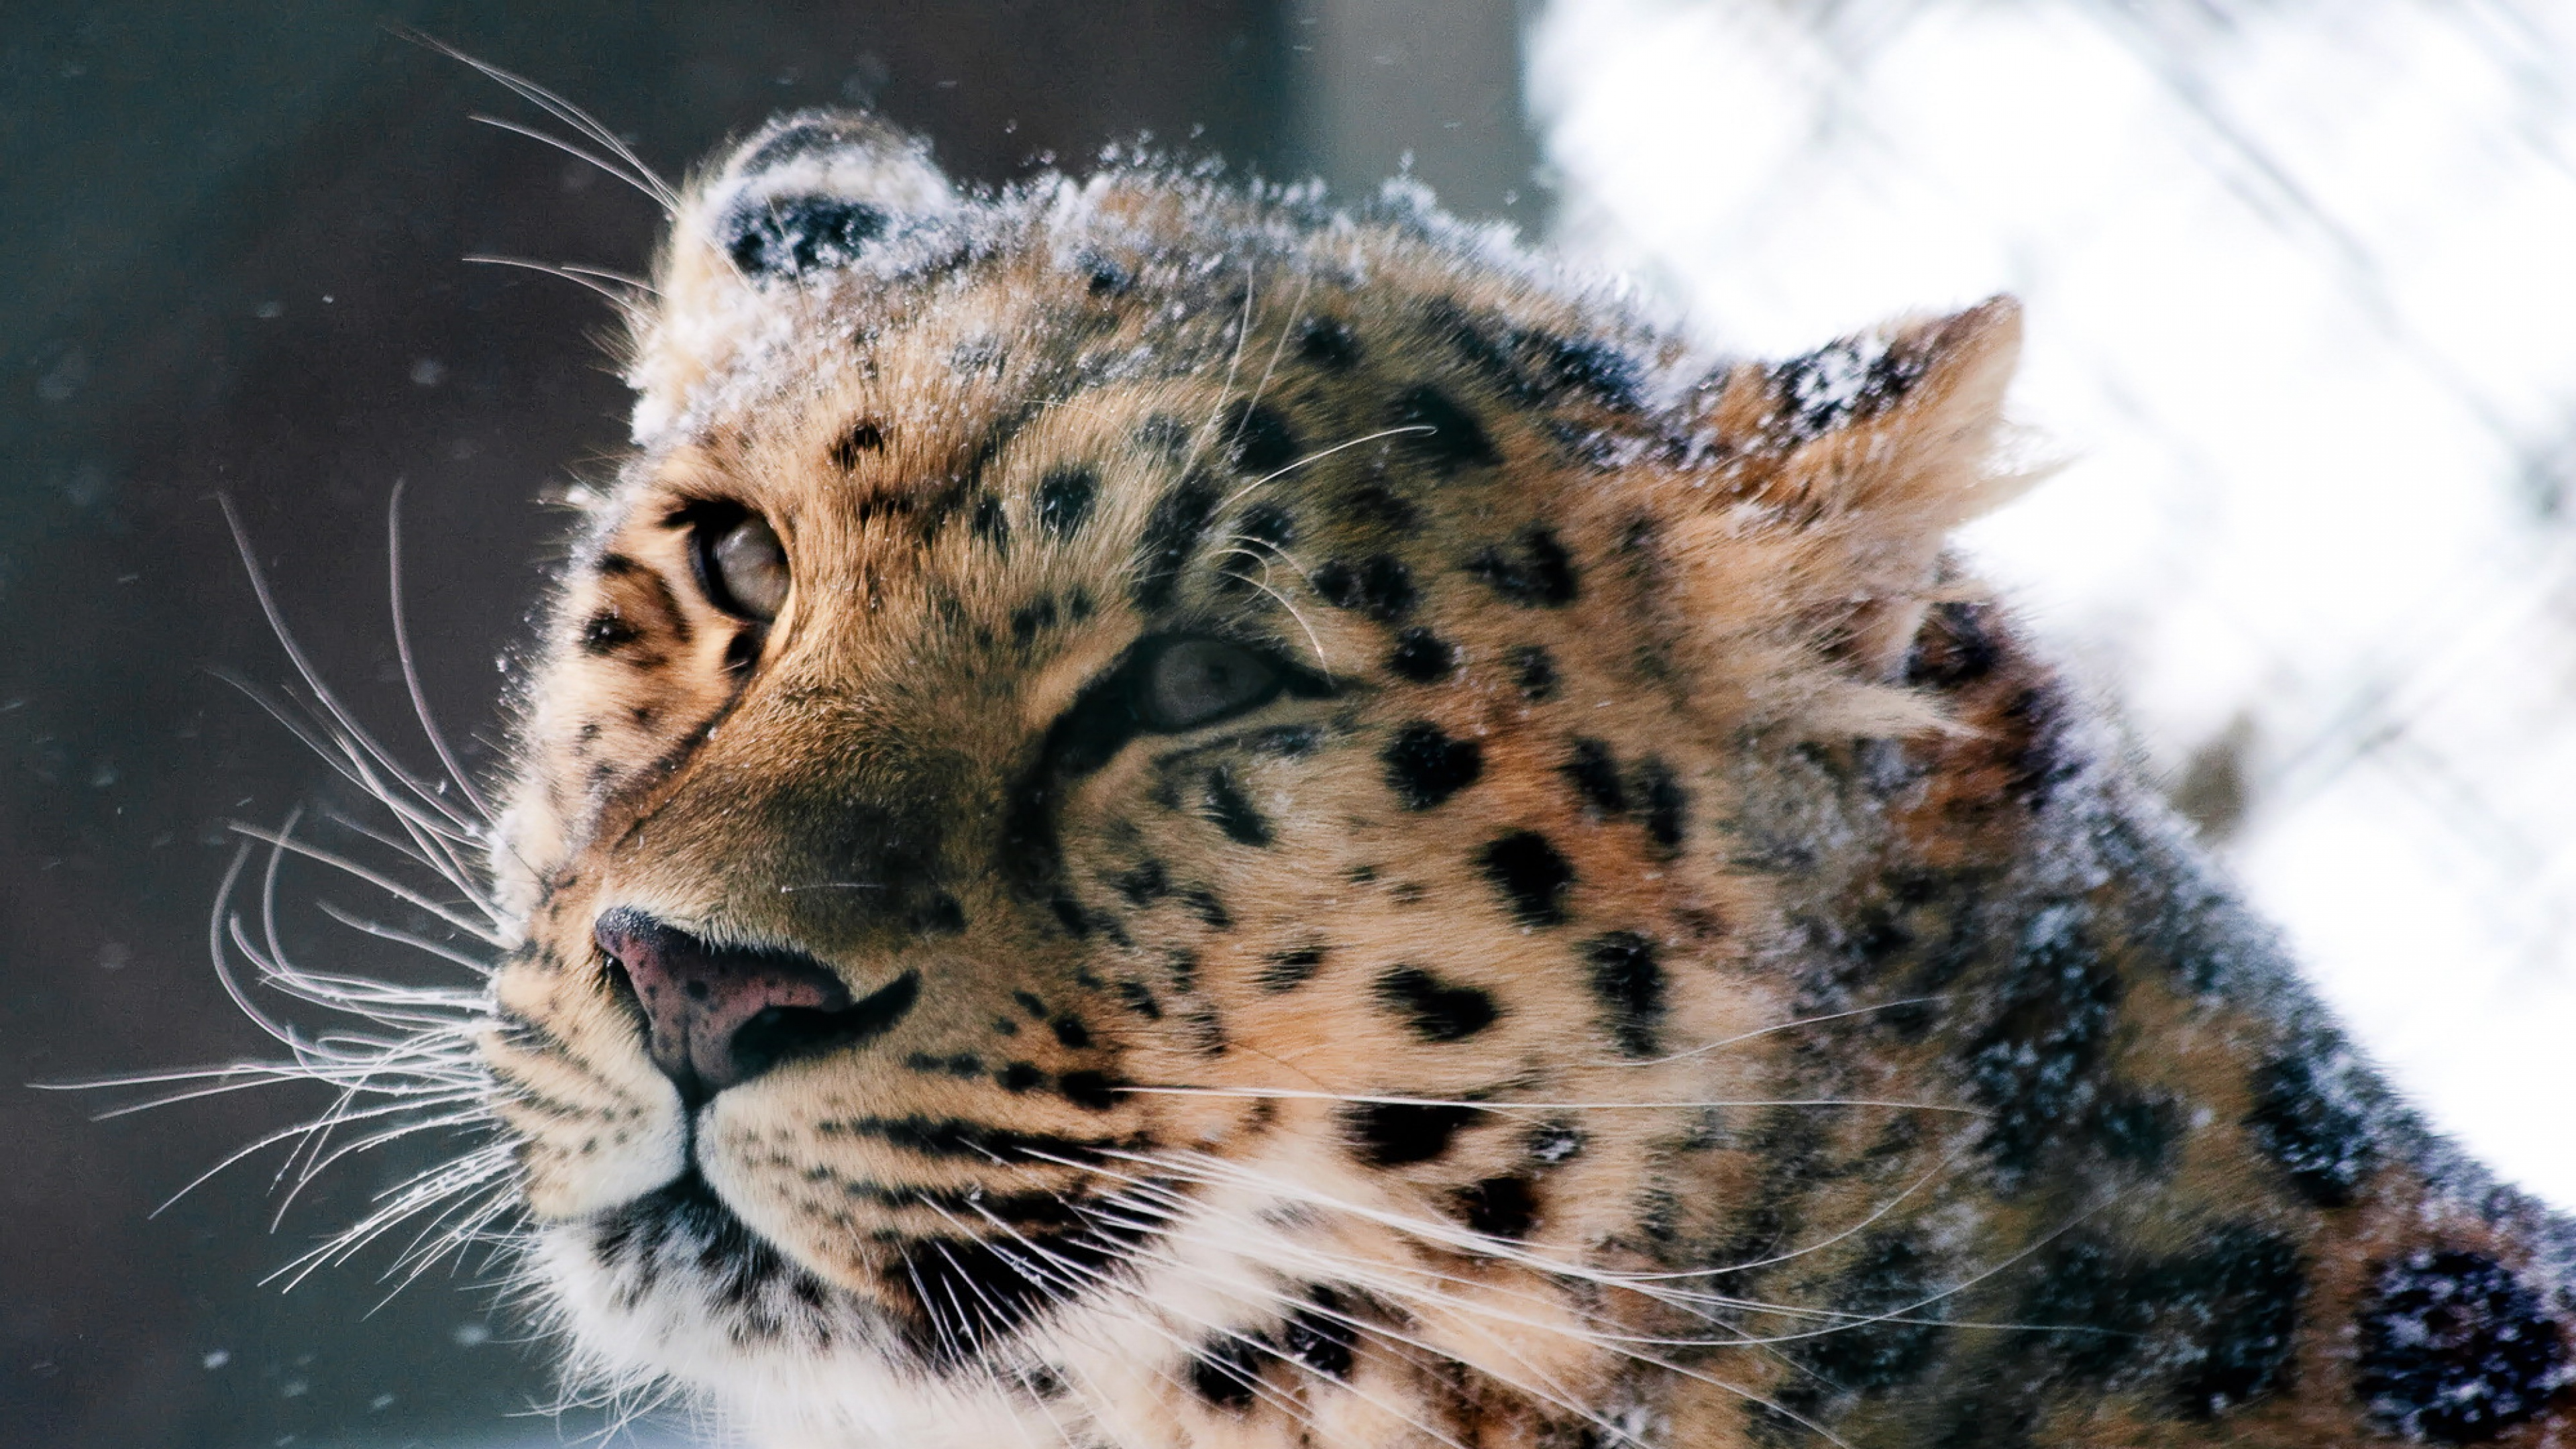 amur leopard wild cat 4k 1542237745 - Amur Leopard Wild Cat 4k - wild wallpapers, predator wallpapers, leopard wallpapers, cat wallpapers, animals wallpapers